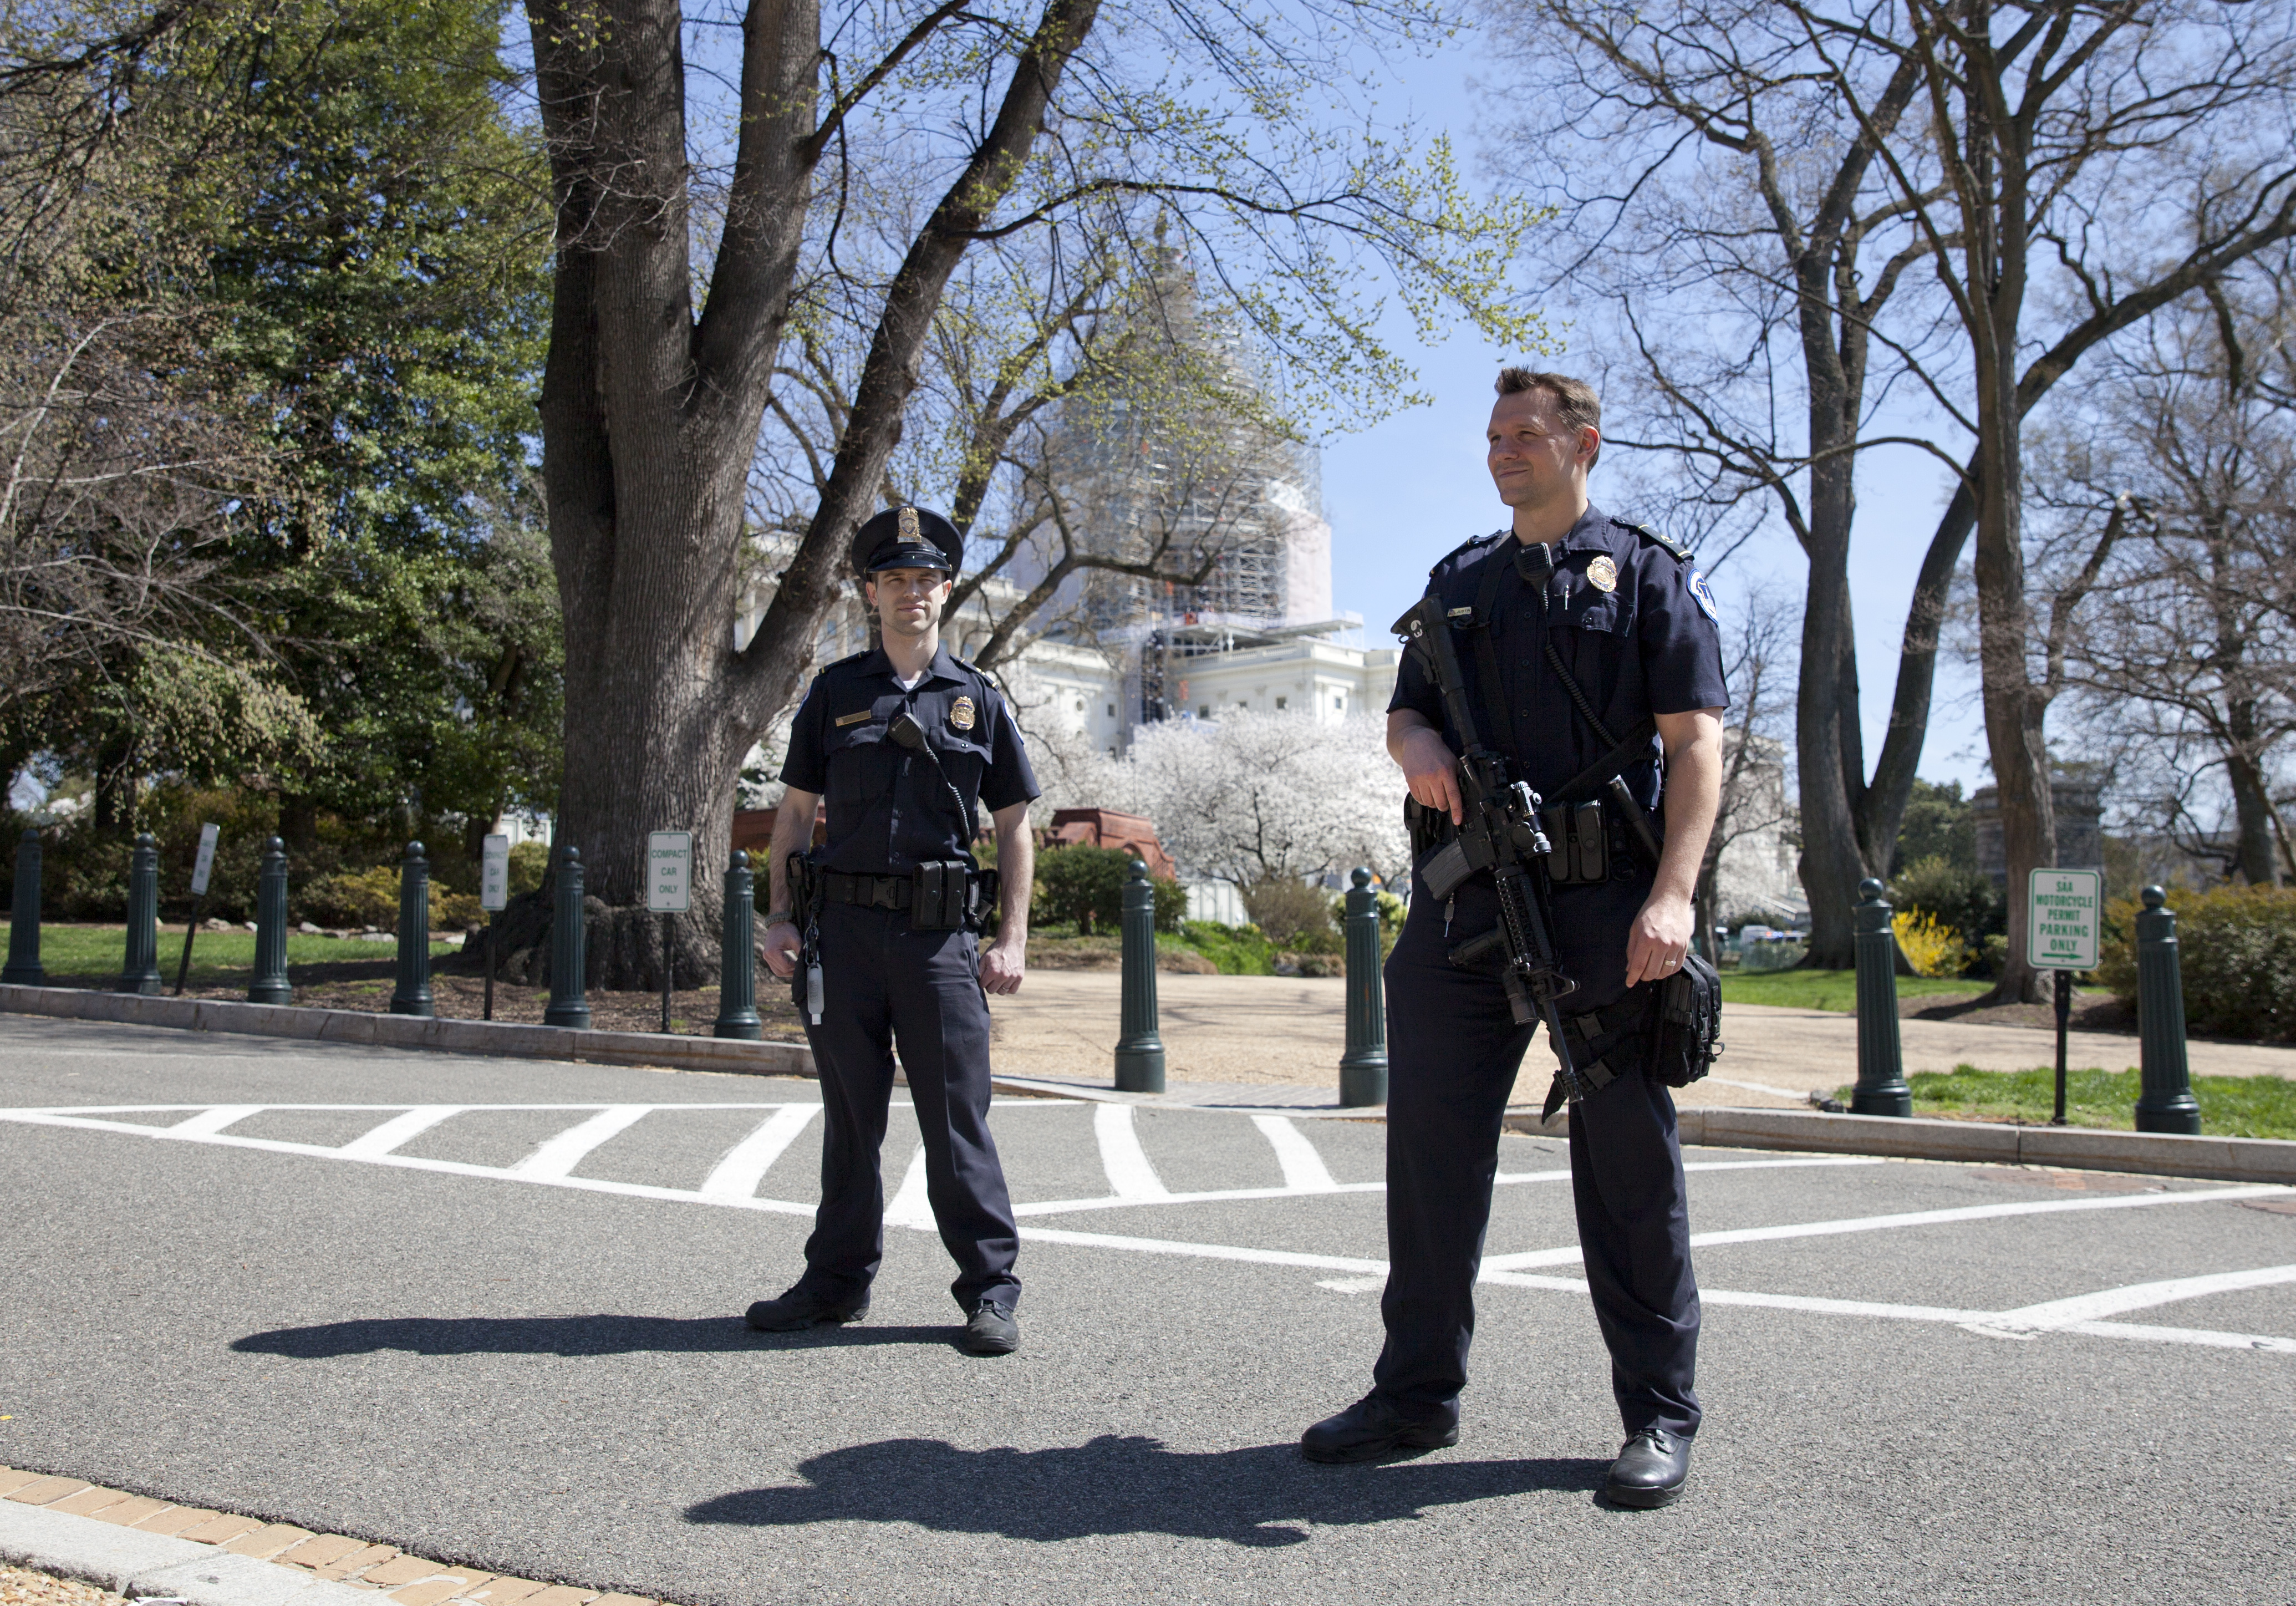 Members of law enforcement keep watch around the north front of the U.S. Capitol in Washington, which was locked down after a gunshot sounded, April 11, 2015.